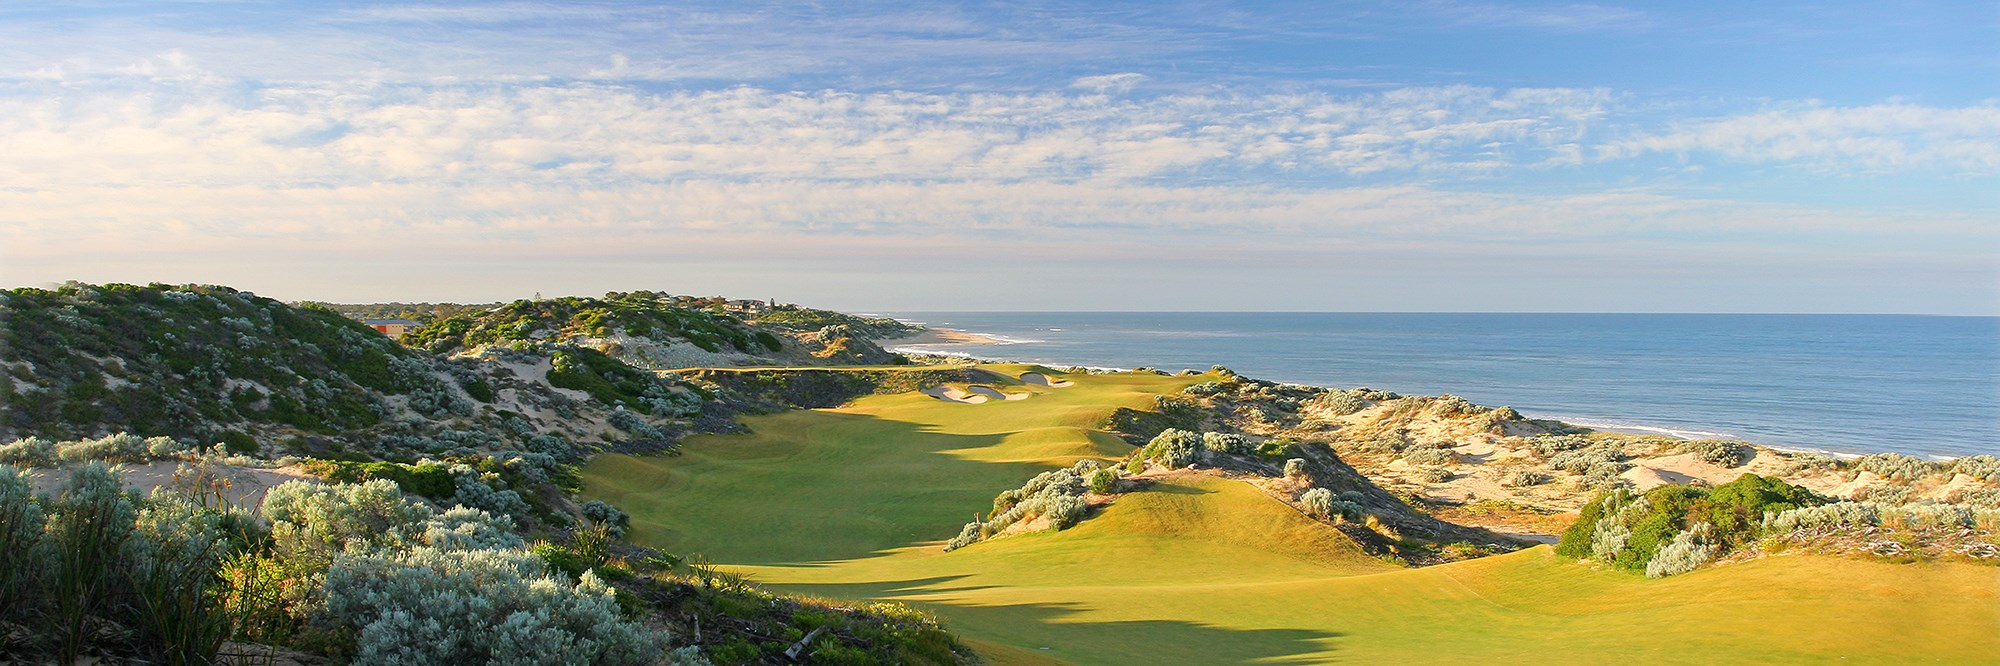 Perth golf | 6 nights, 5 games